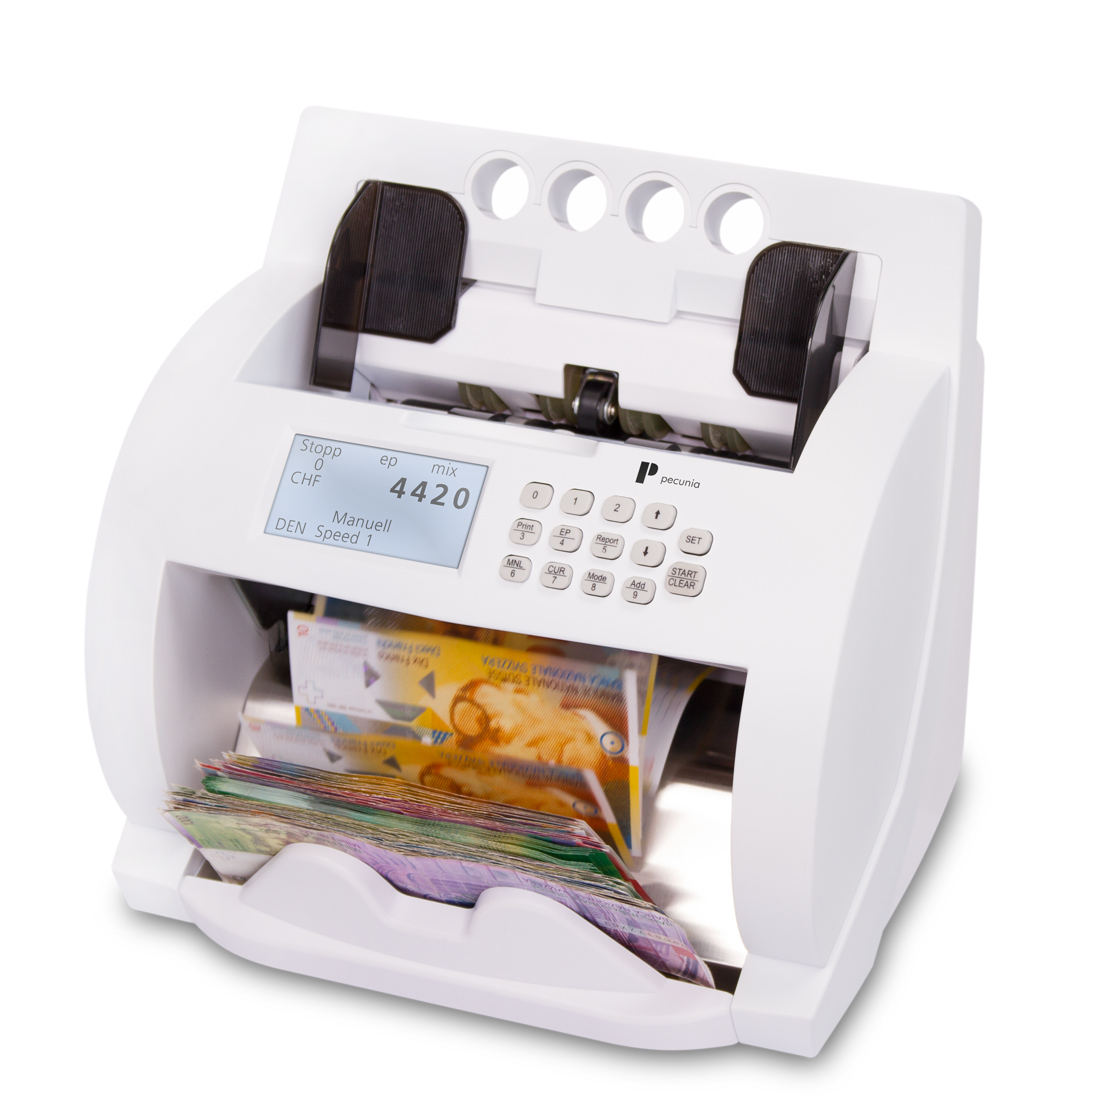 Banknote counters Pecunia PC 900 Plus